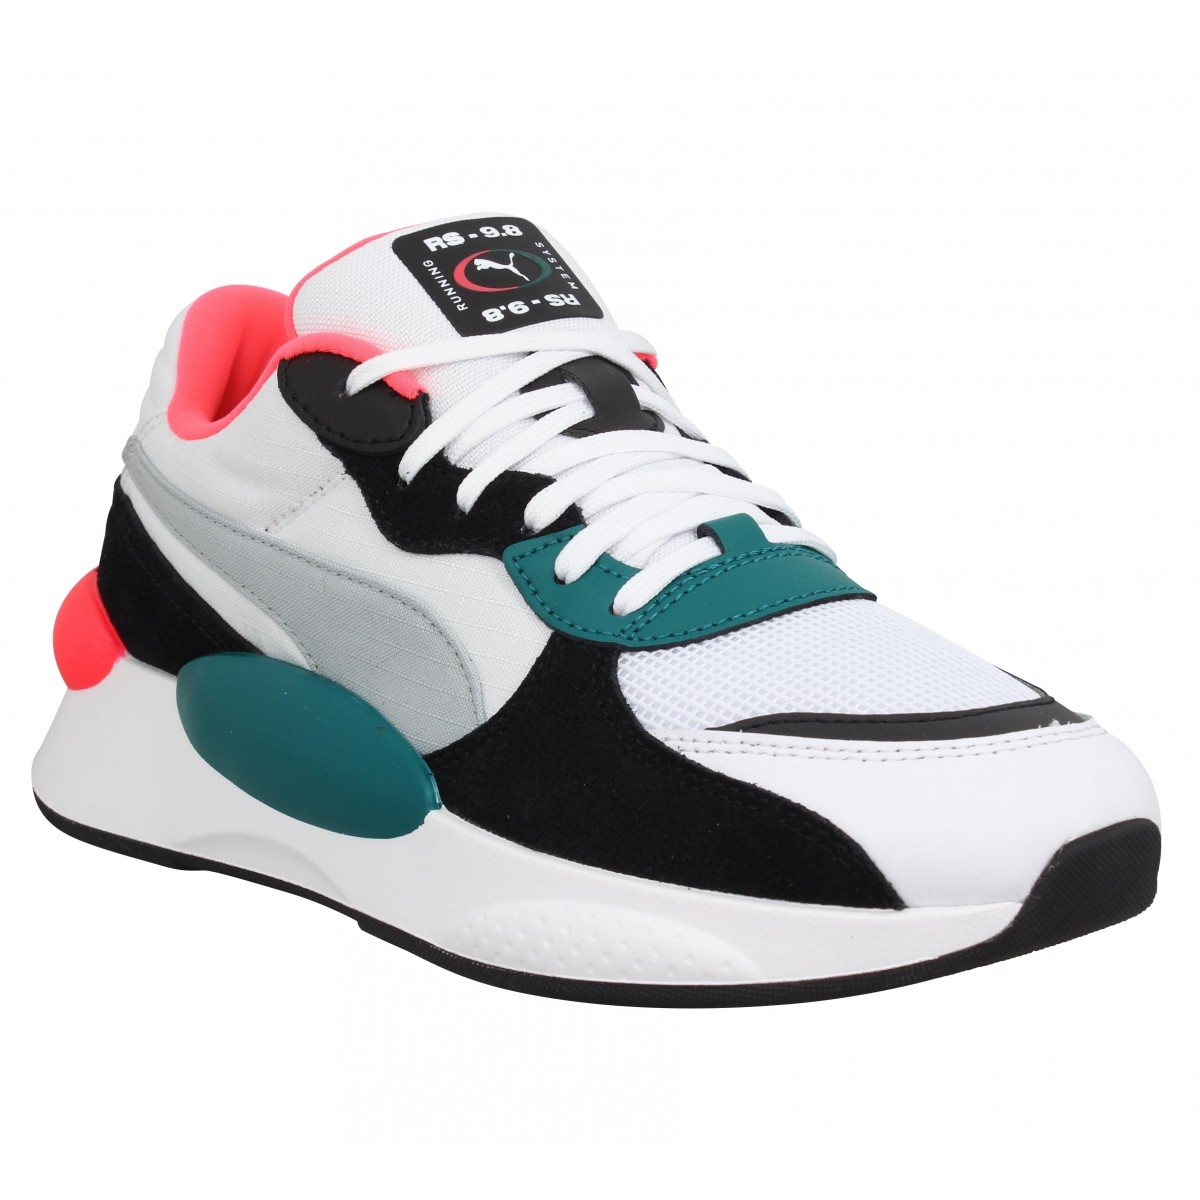 Baskets PUMA RS 9.8 Space toile Femme Blanc